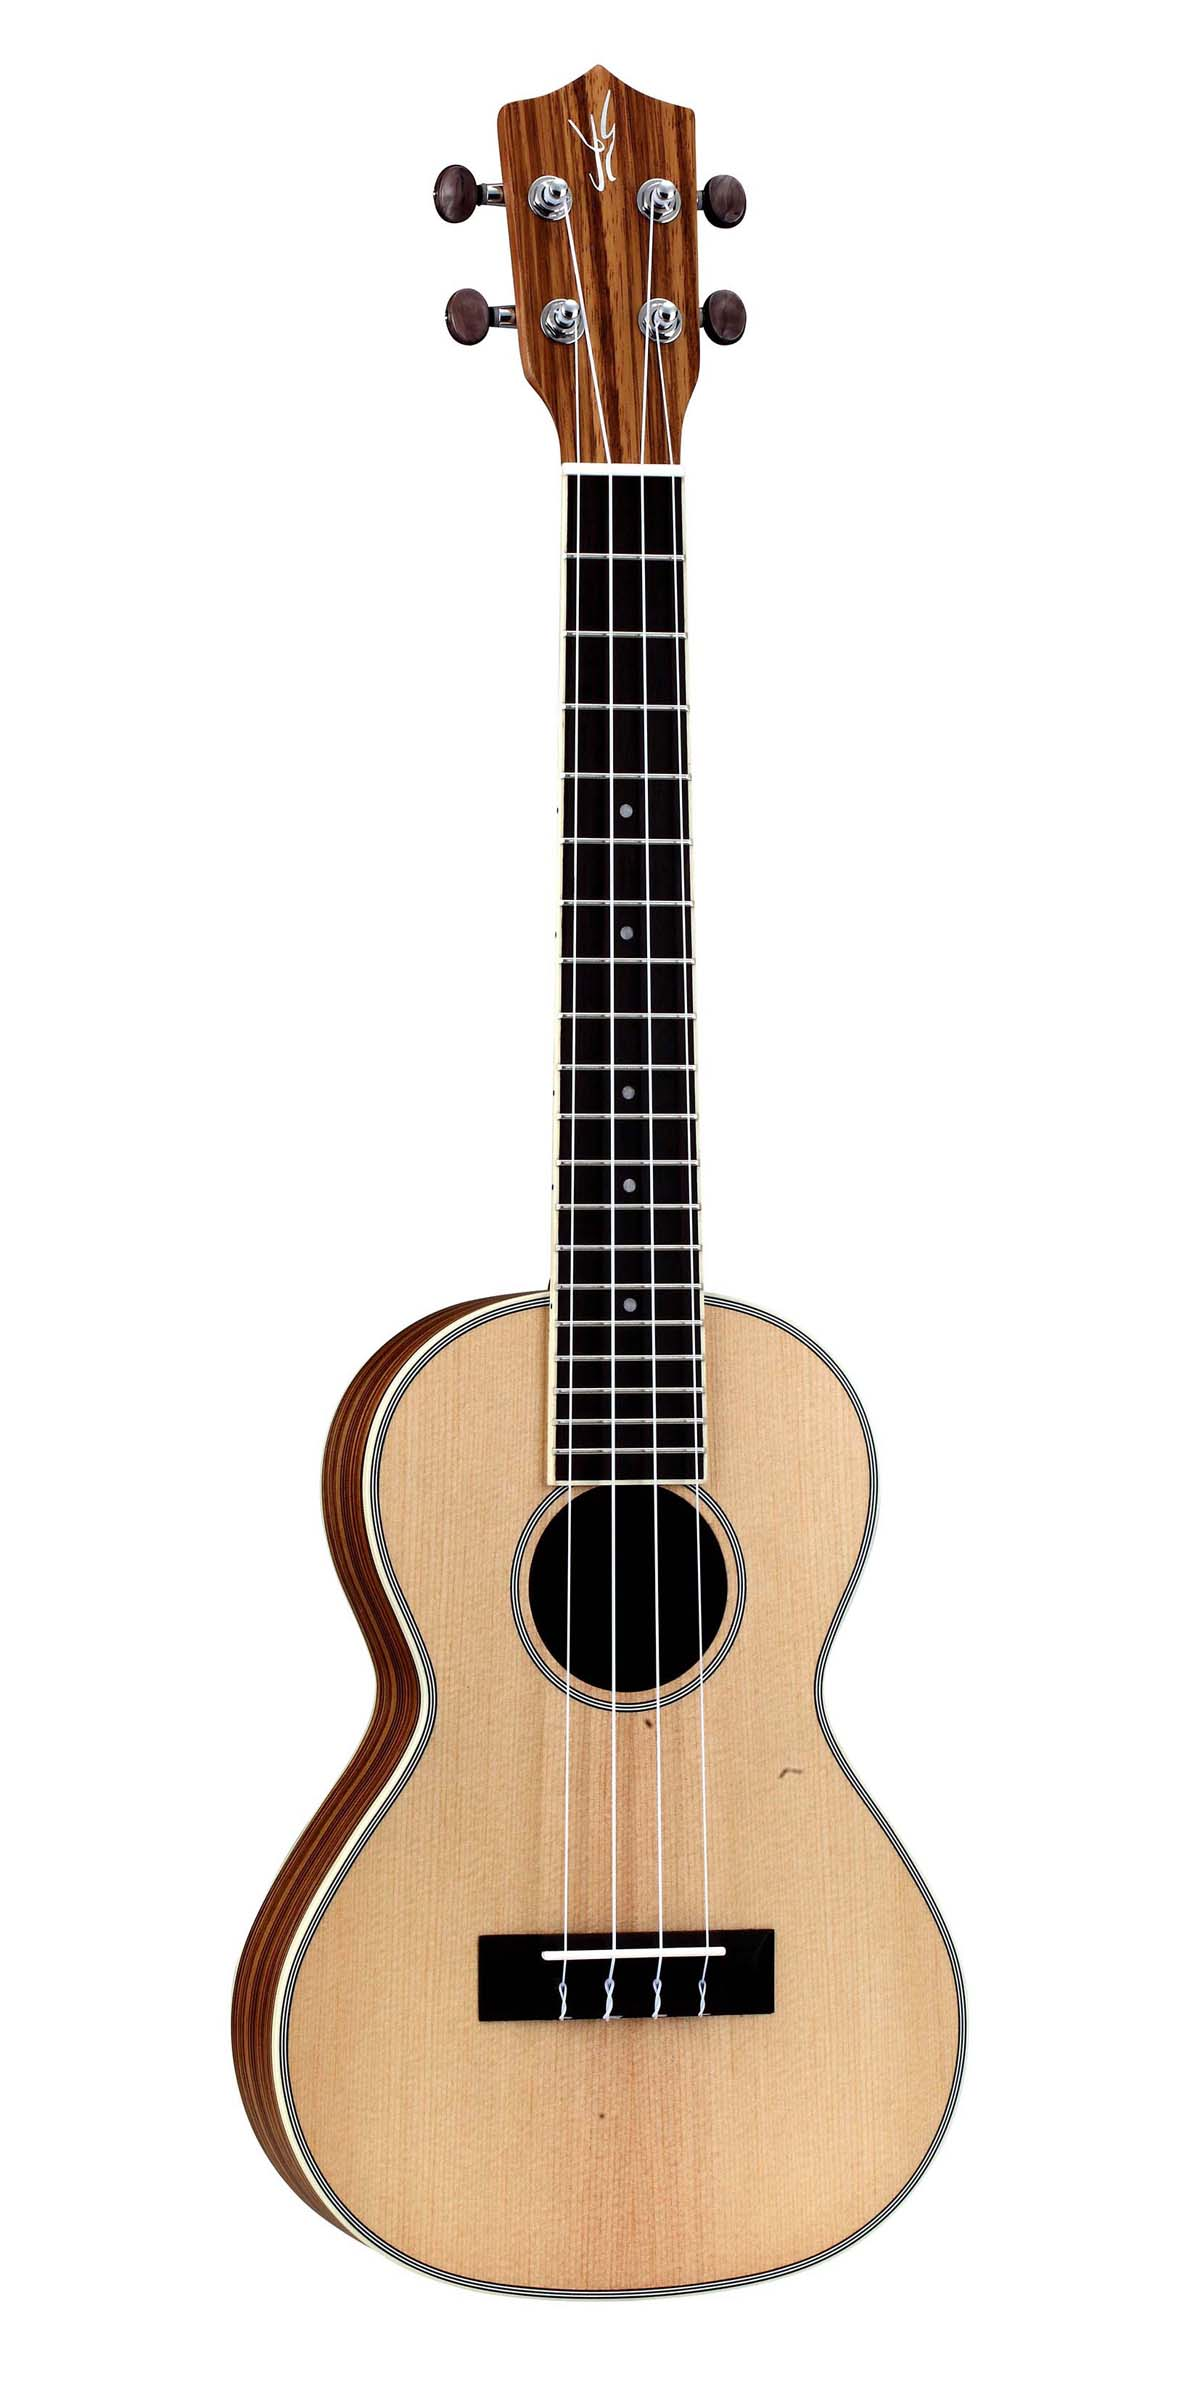 Spruce Plywood,Tenor Ukulele